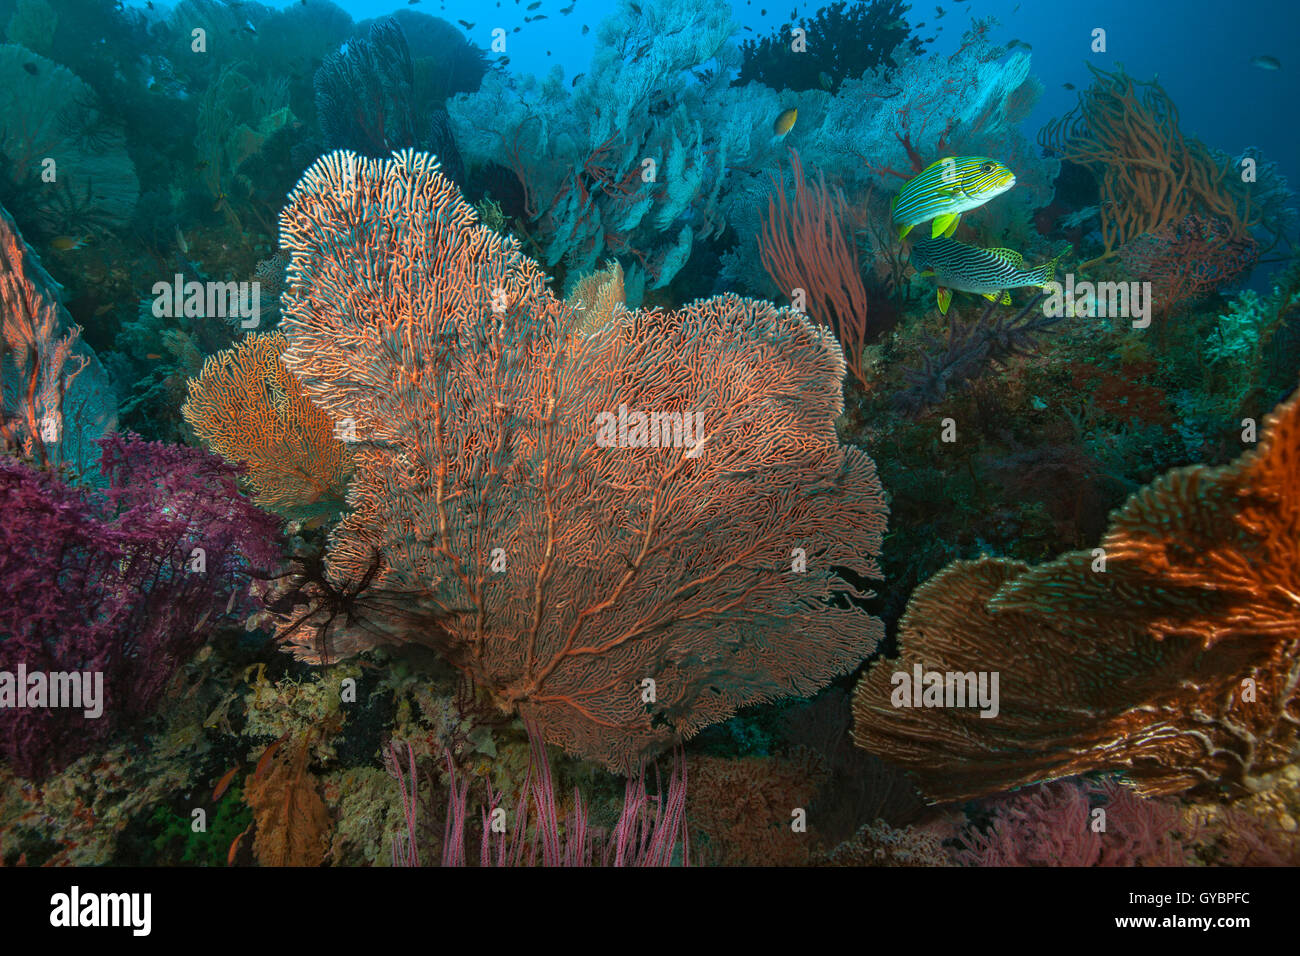 Sweetlips fish feeding in colorful coral reef. - Stock Image